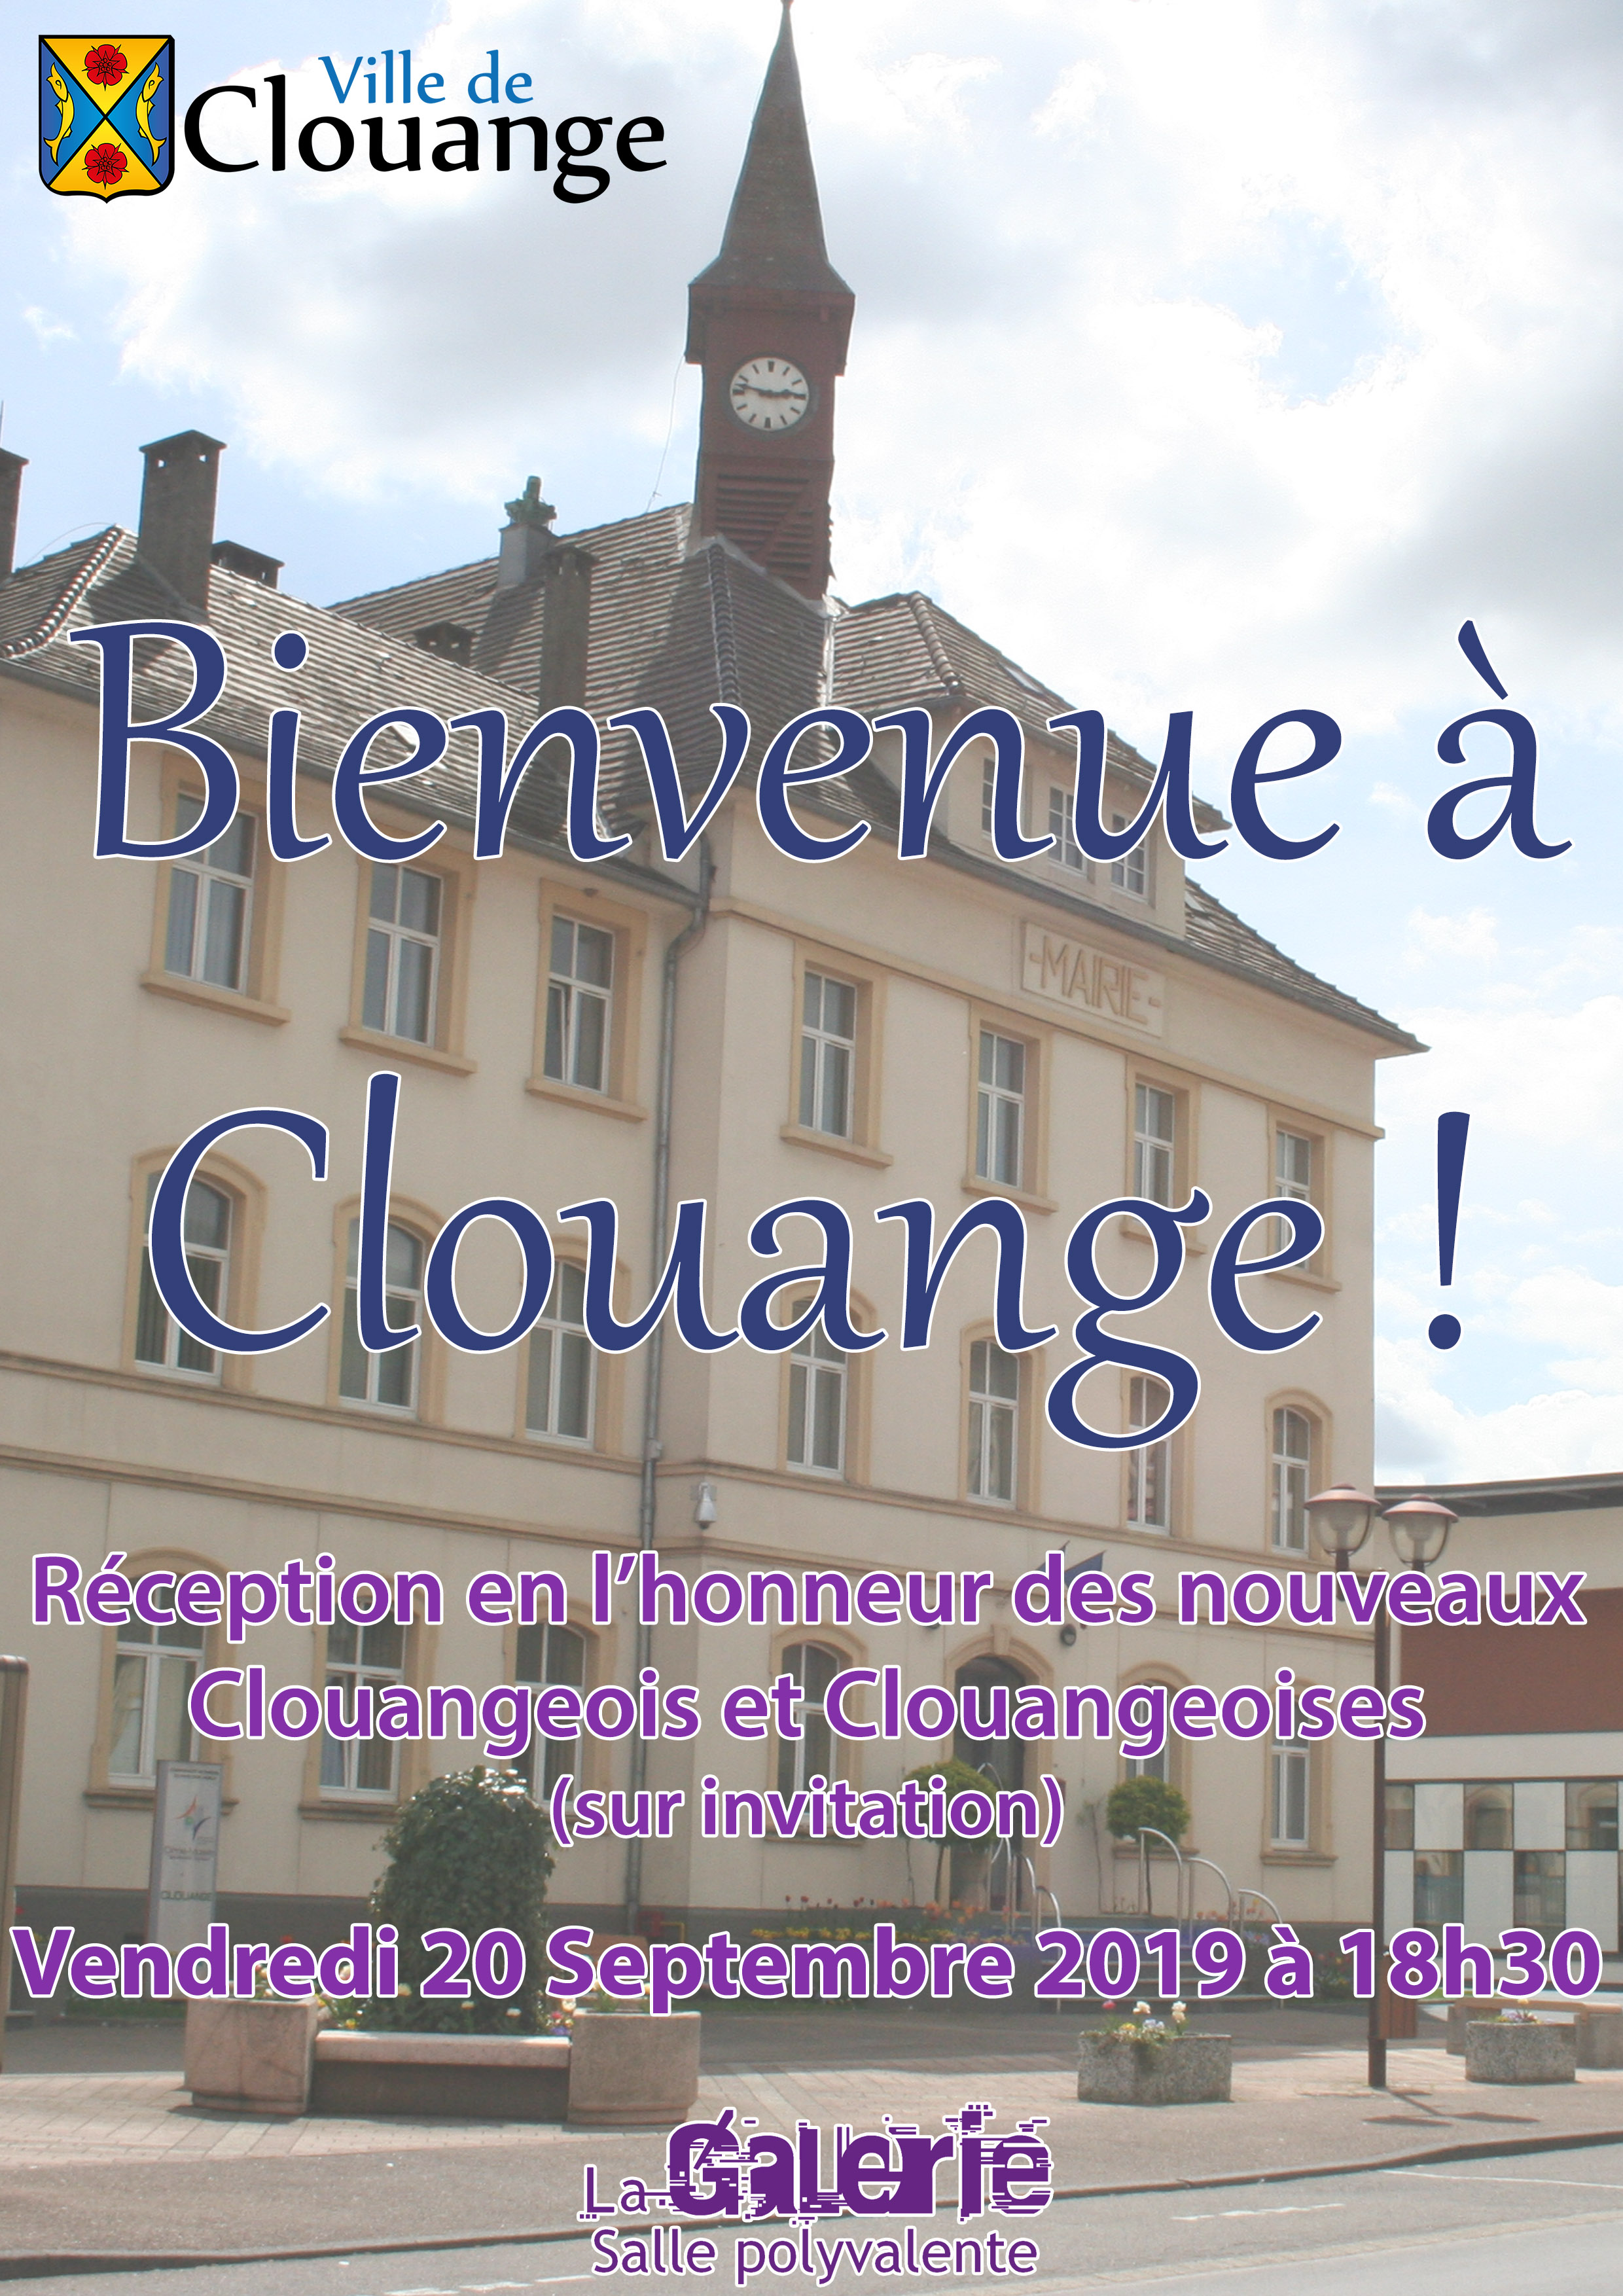 Bienvenue à Clouange !